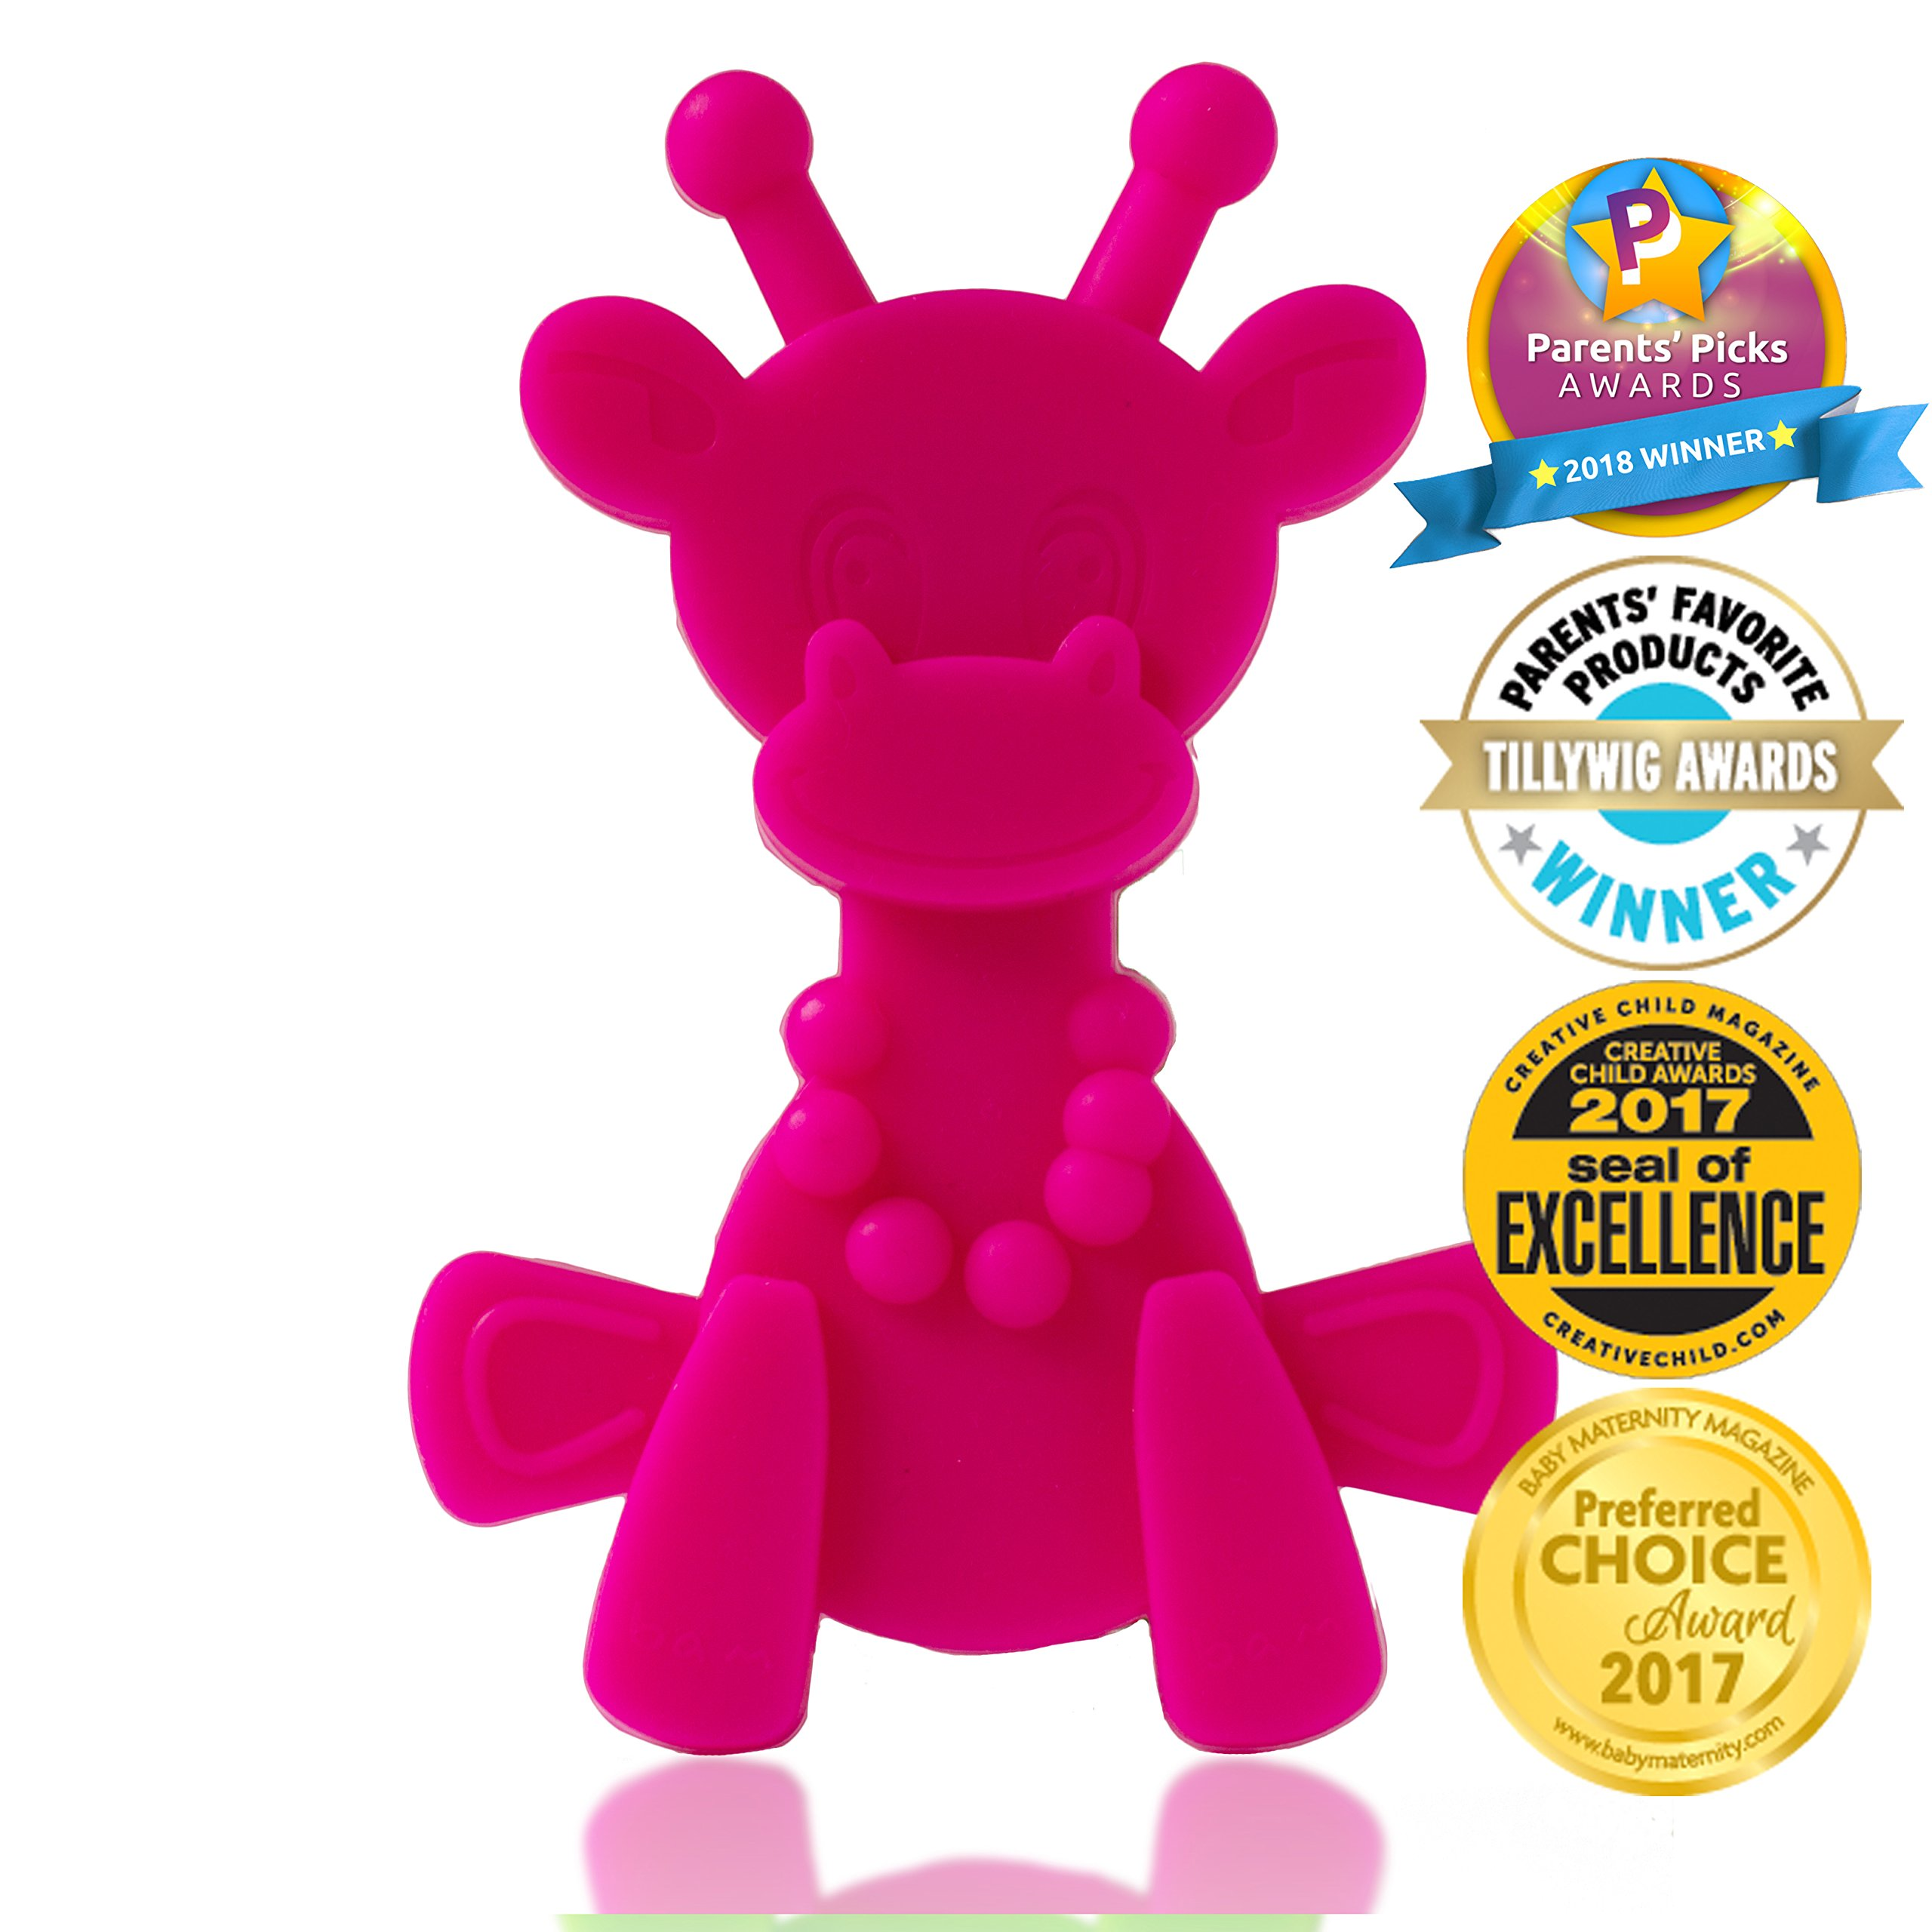 f061d867d2c Details about Baby Teething Toy Extraordinaire - Little bamBAM Giraffe  Teether Toys by